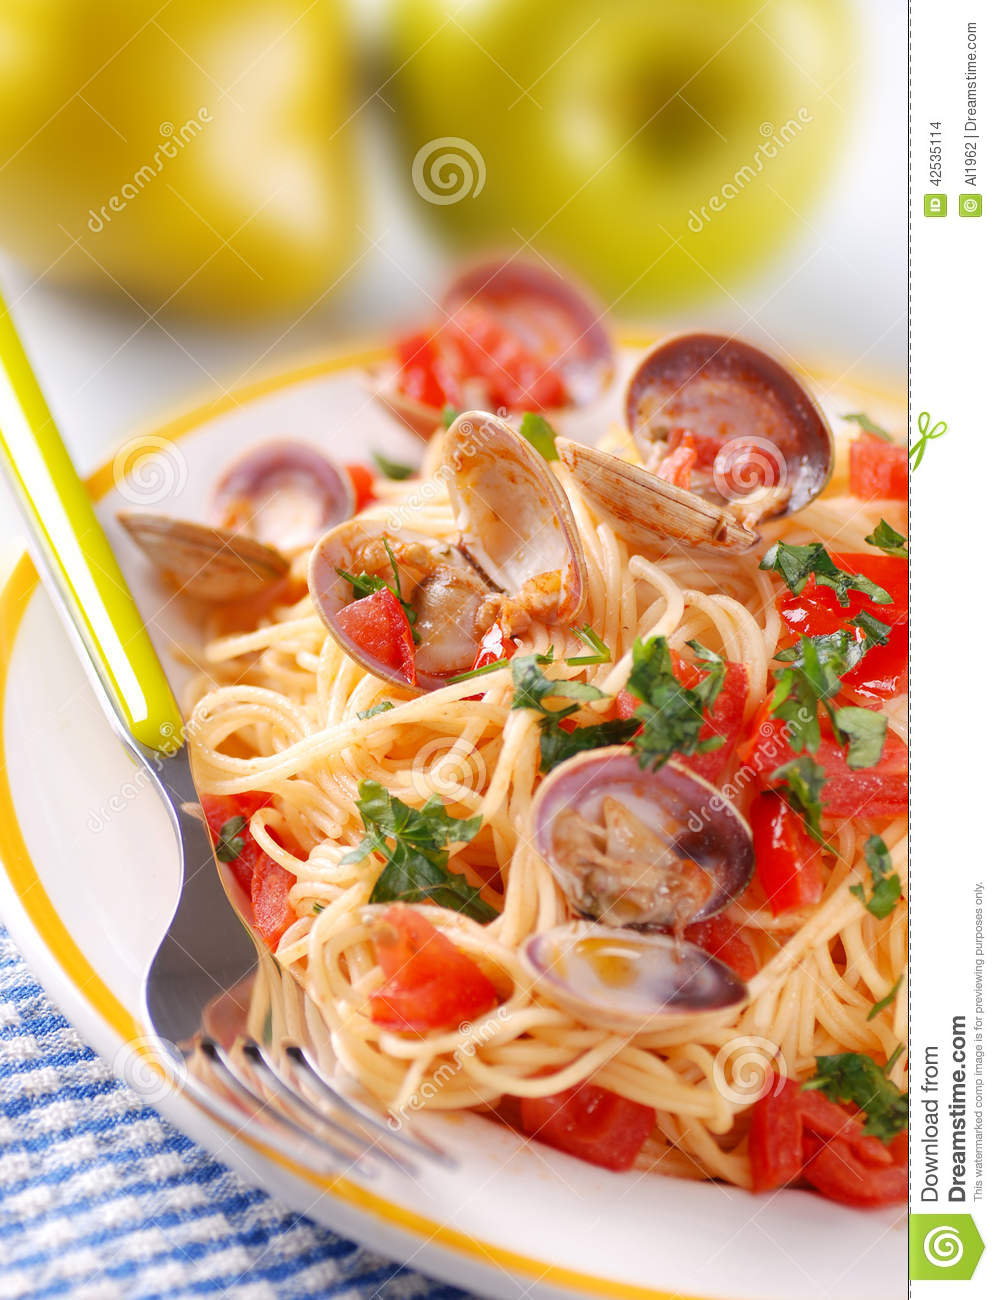 Download Spaghetti with clams stock photo. Image of pepper, prepared - 42535114